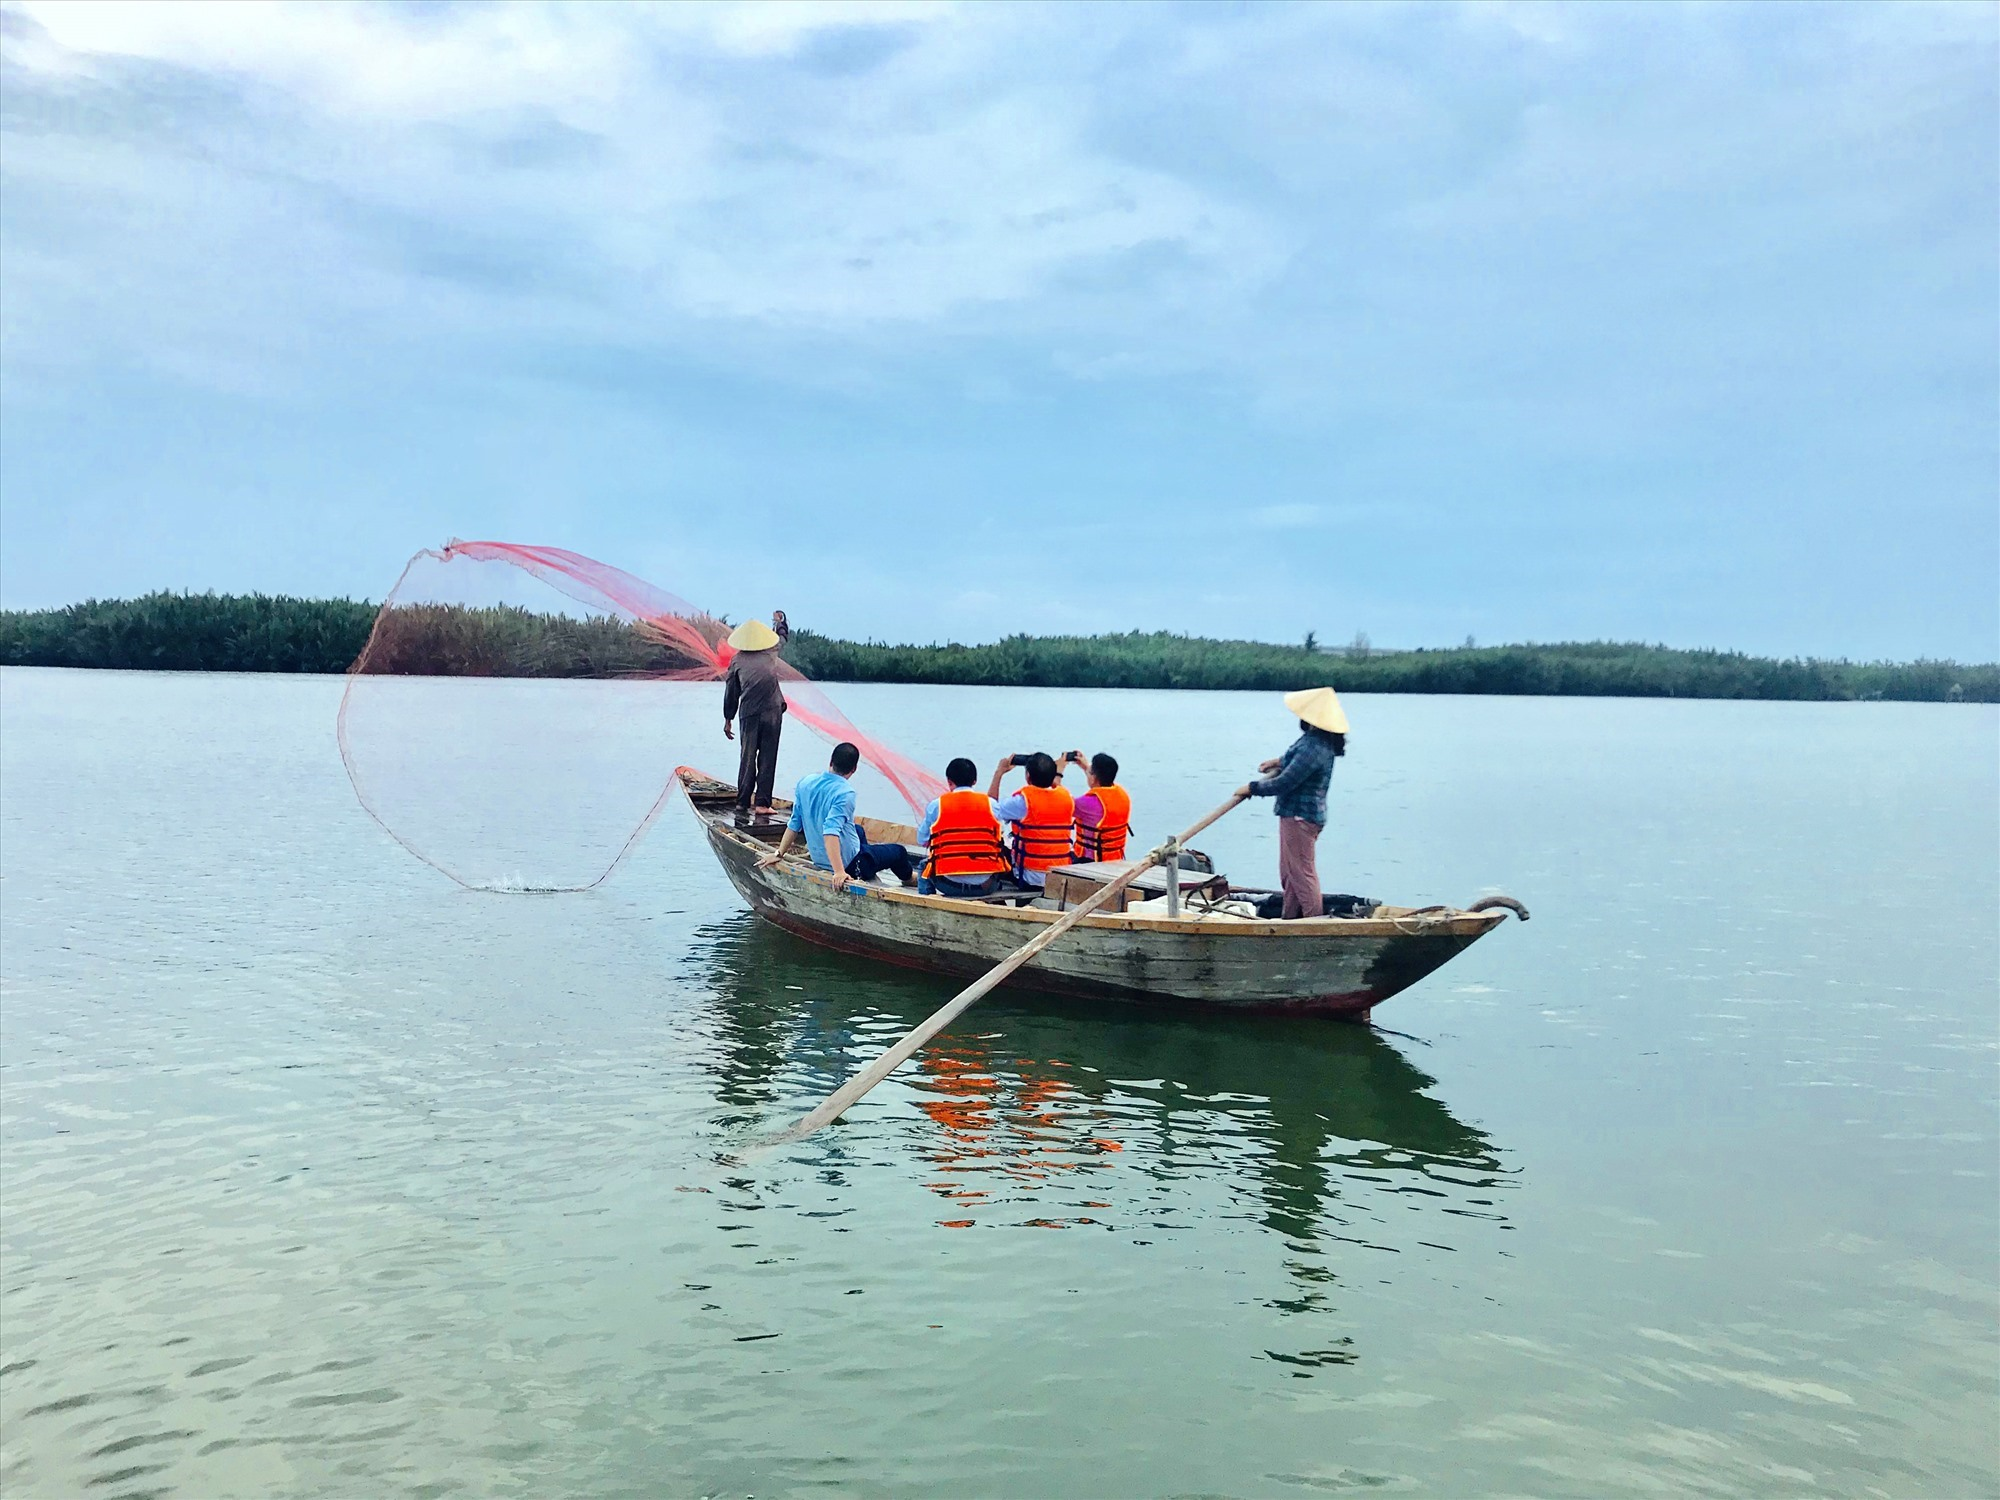 Water tourism in Quang Nam